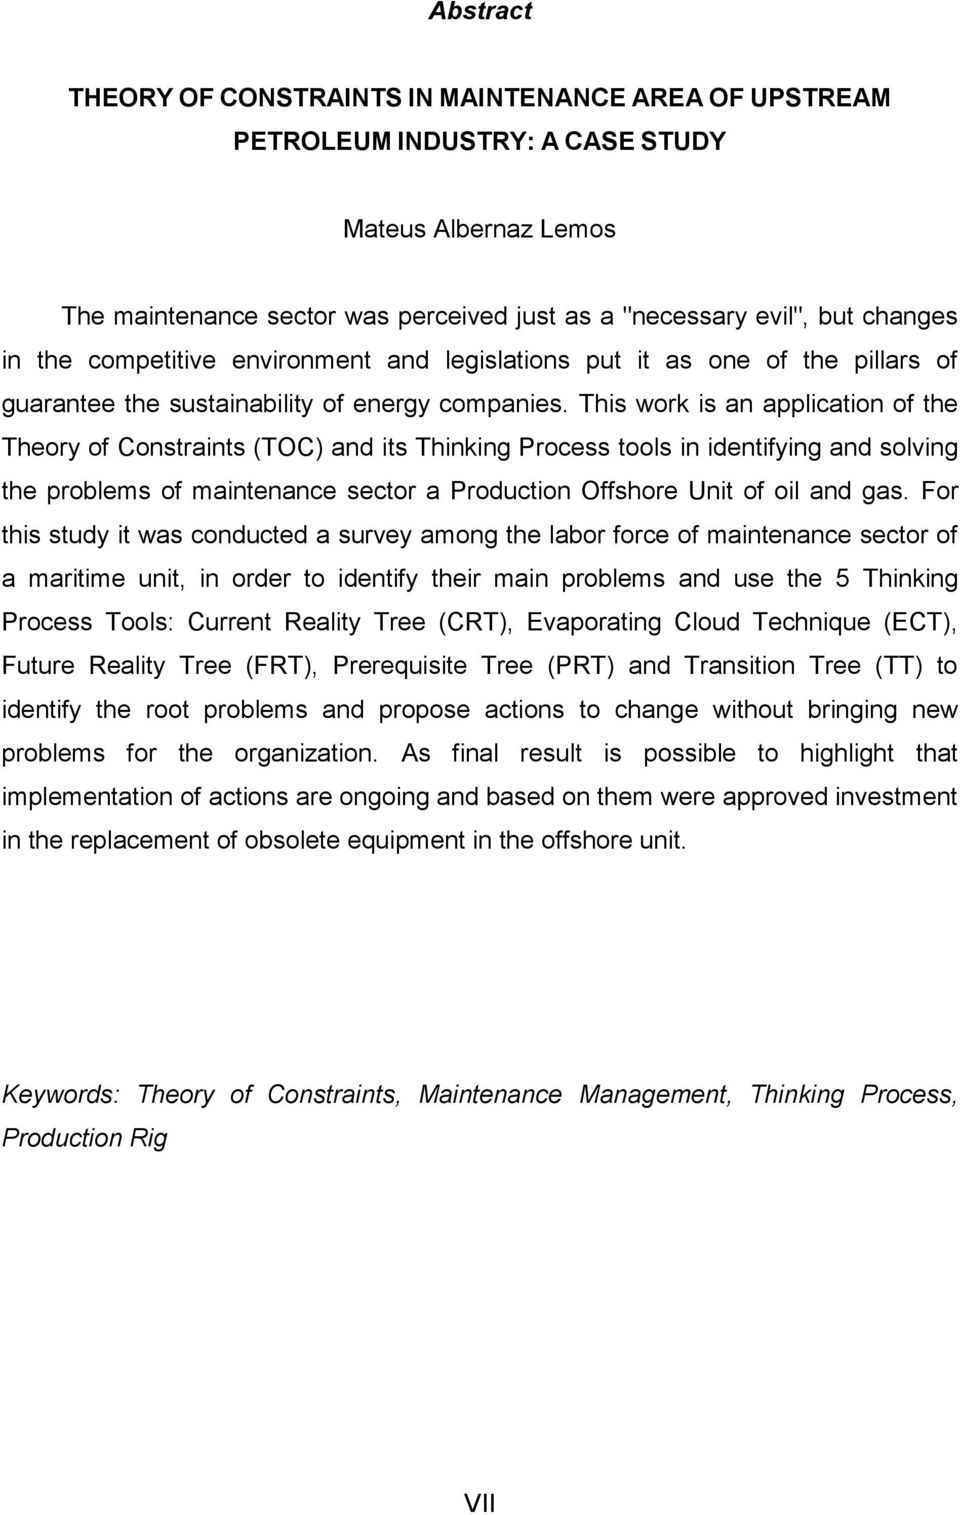 This work is an application of the Theory of Constraints (TOC) and its Thinking Process tools in identifying and solving the problems of maintenance sector a Production Offshore Unit of oil and gas.